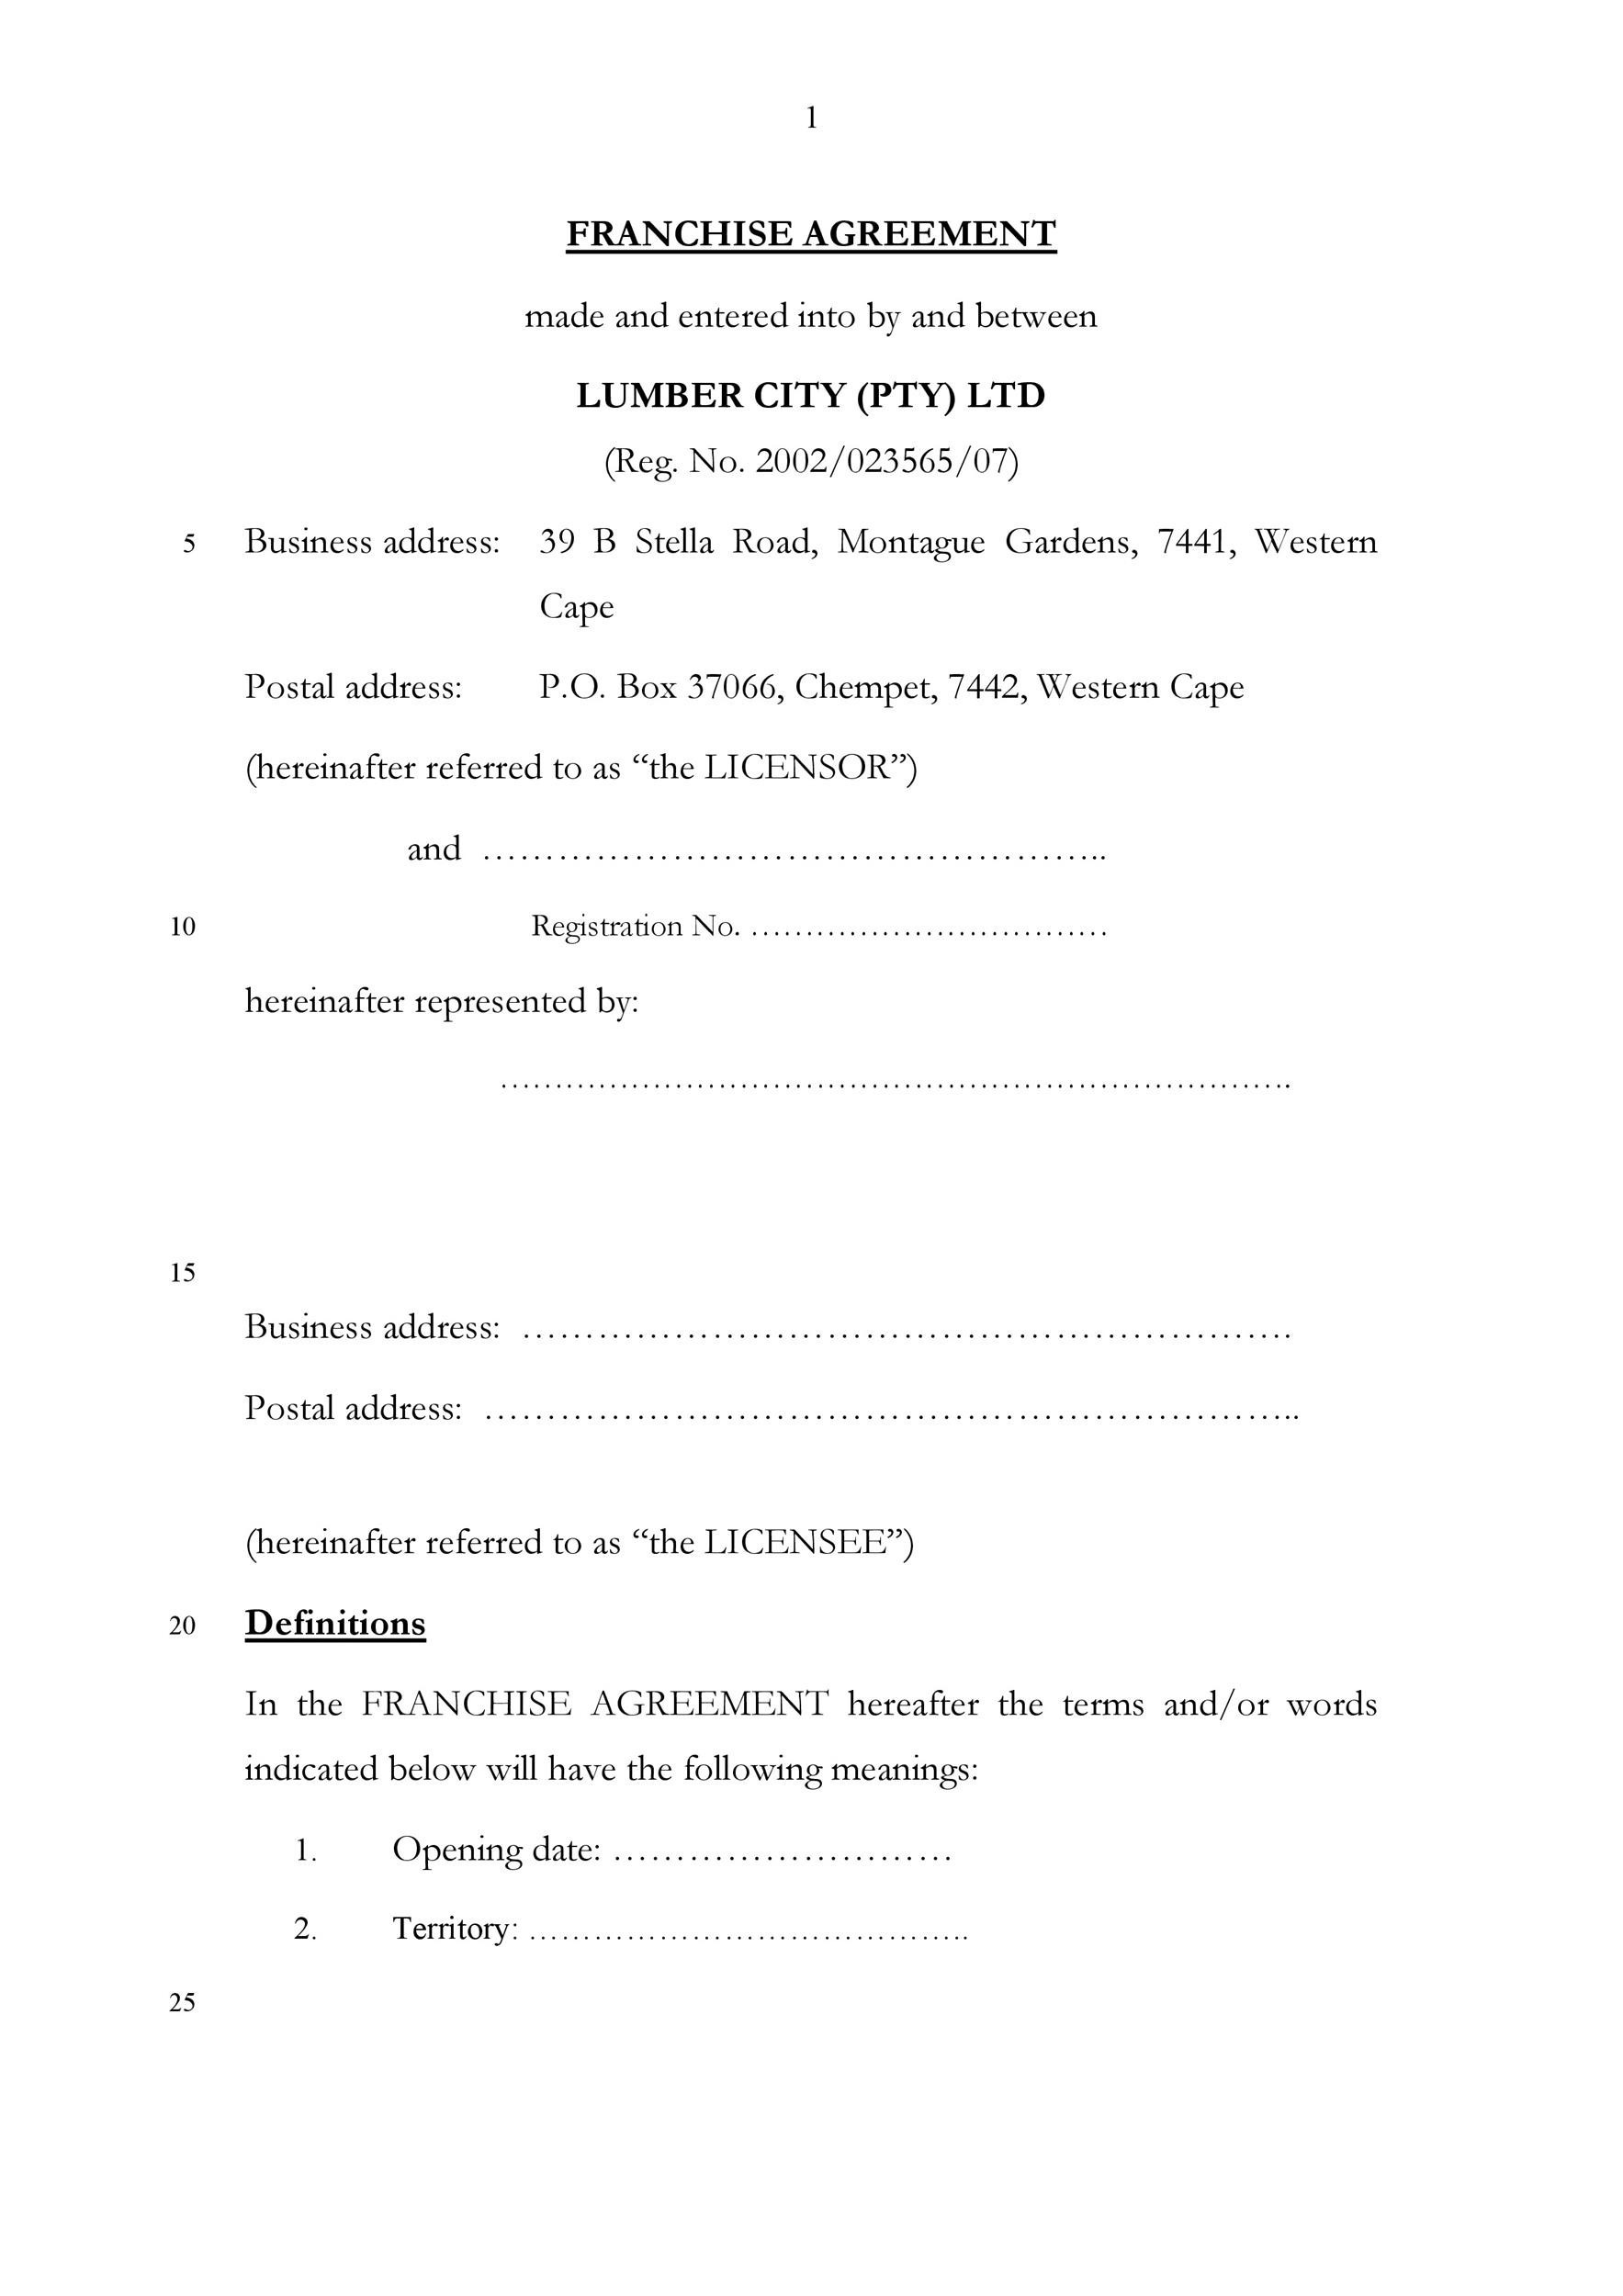 Free franchise agreement 04